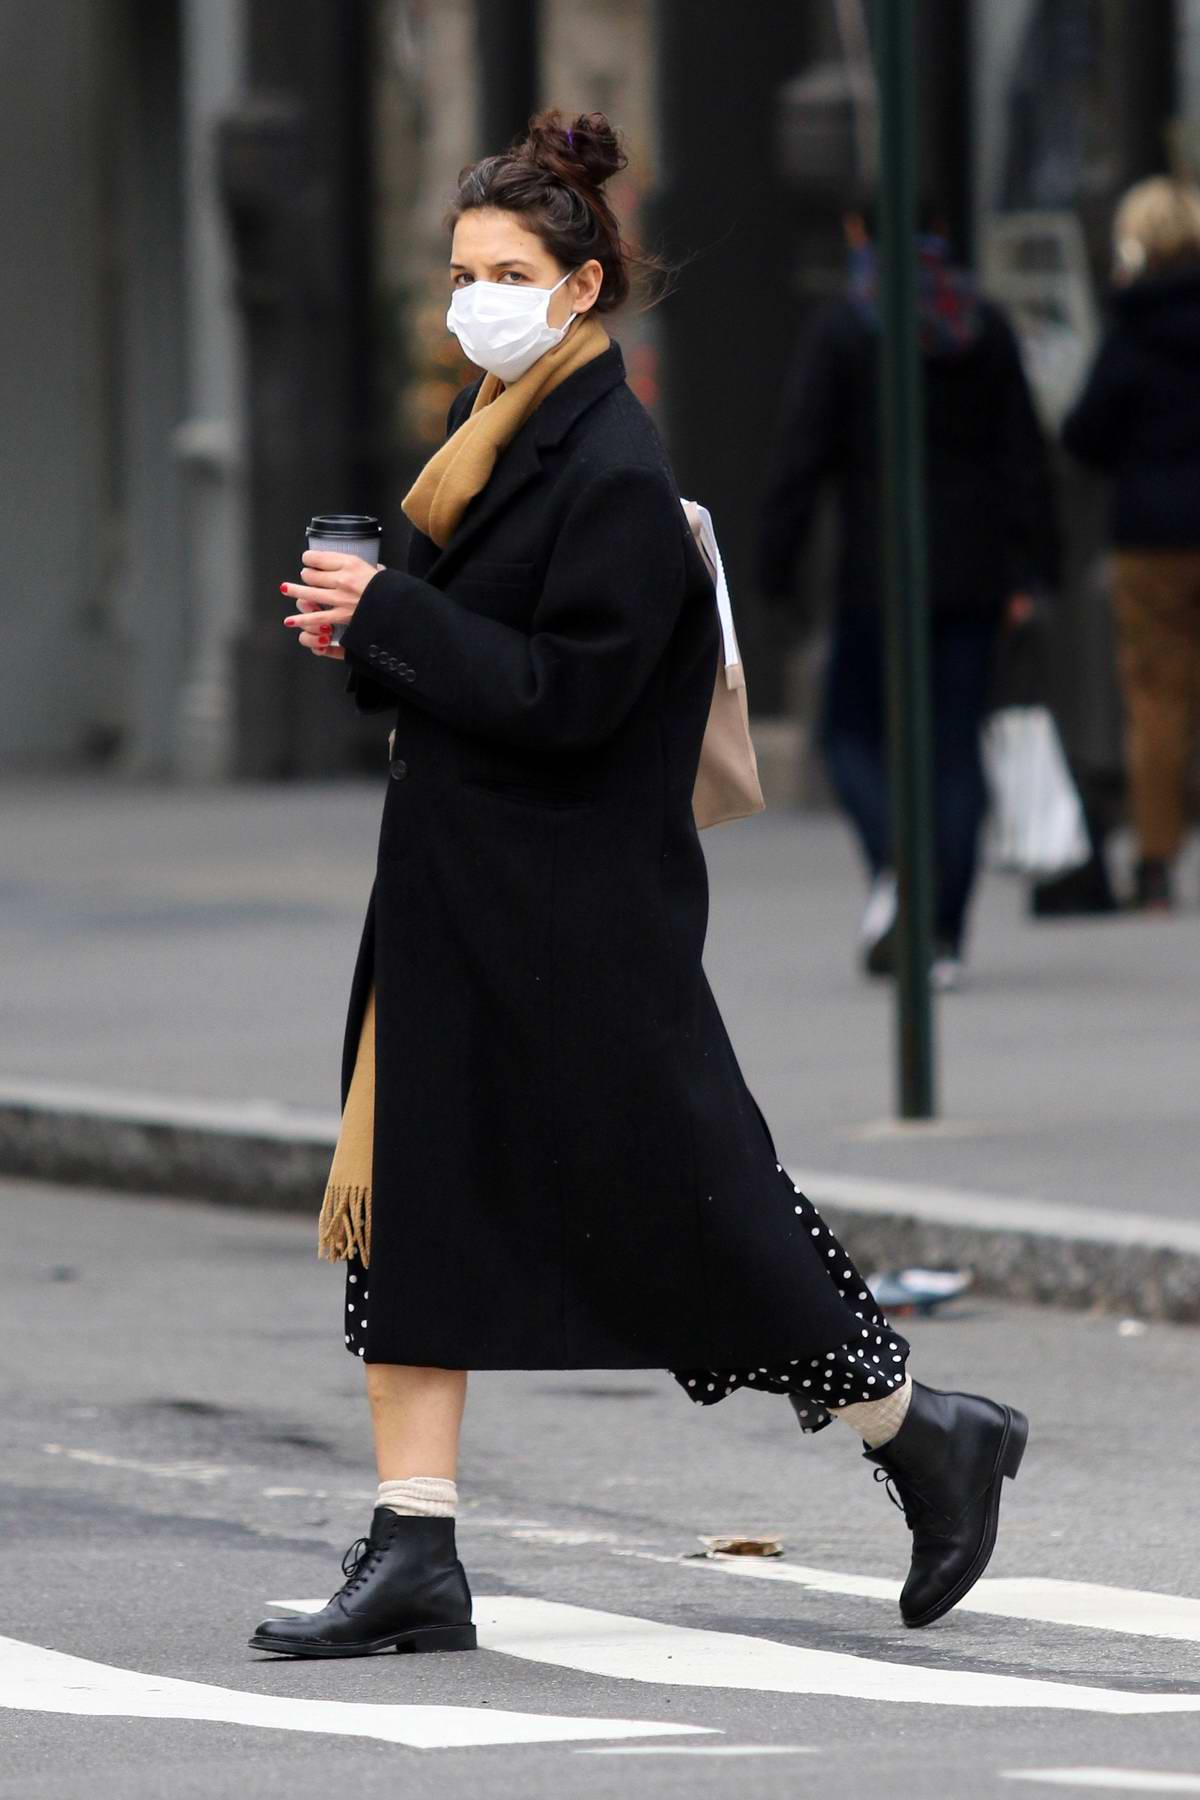 Katie Holmes bundles up in a black polka dot dress underneath a trench coat and scarf for a cold day in New York City